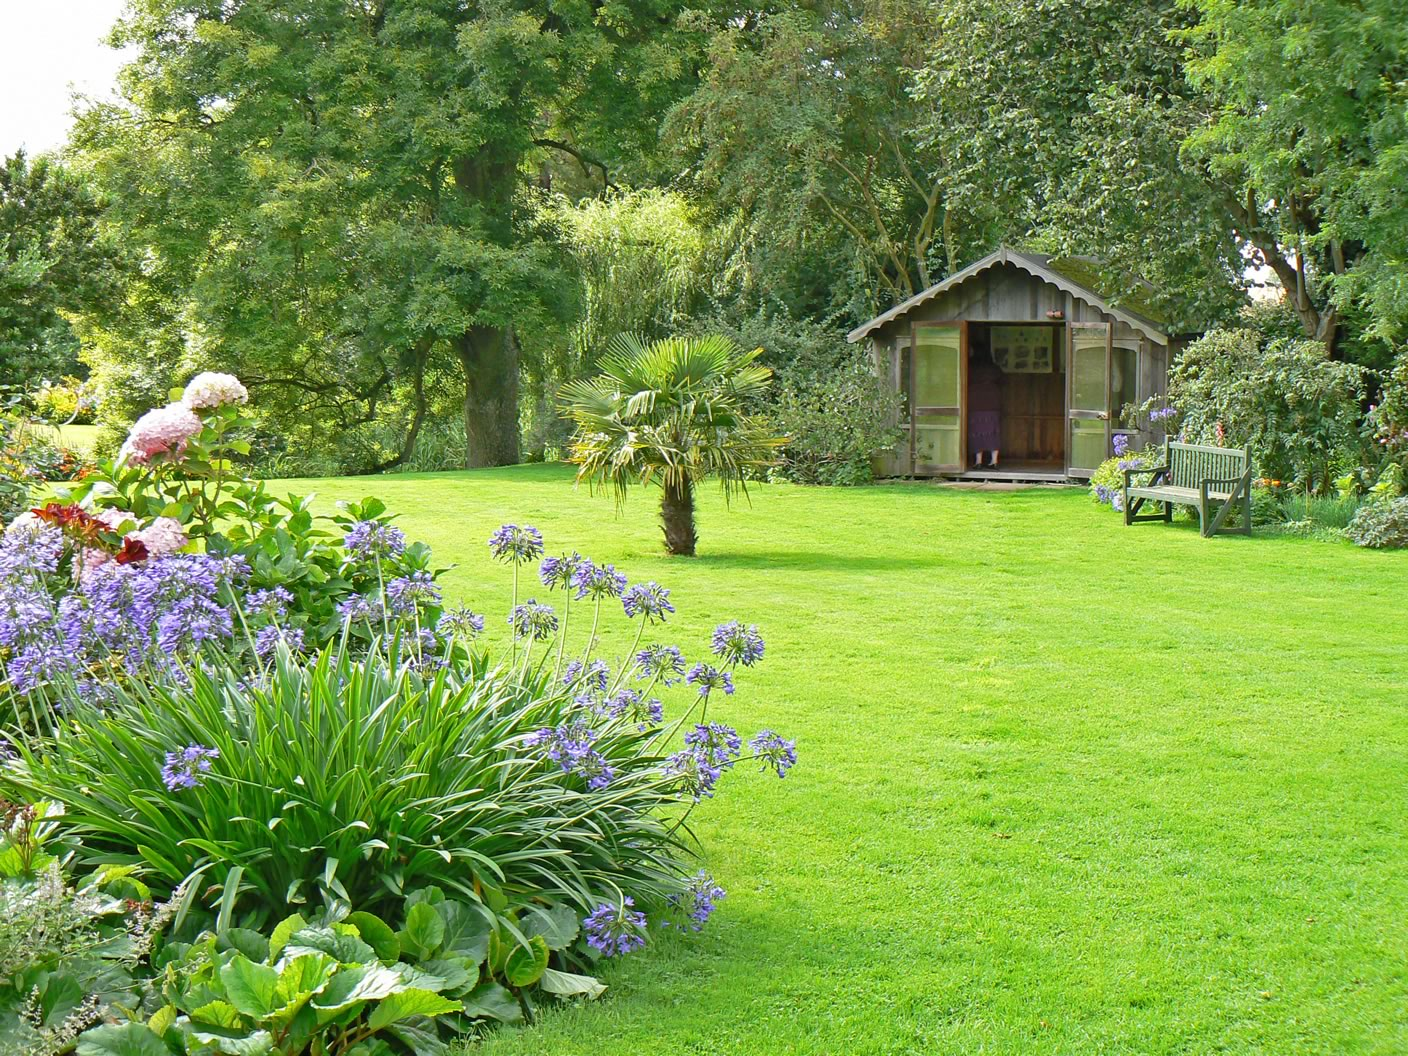 Garden lawn ideas lawn and hedge care for Beautiful garden layouts